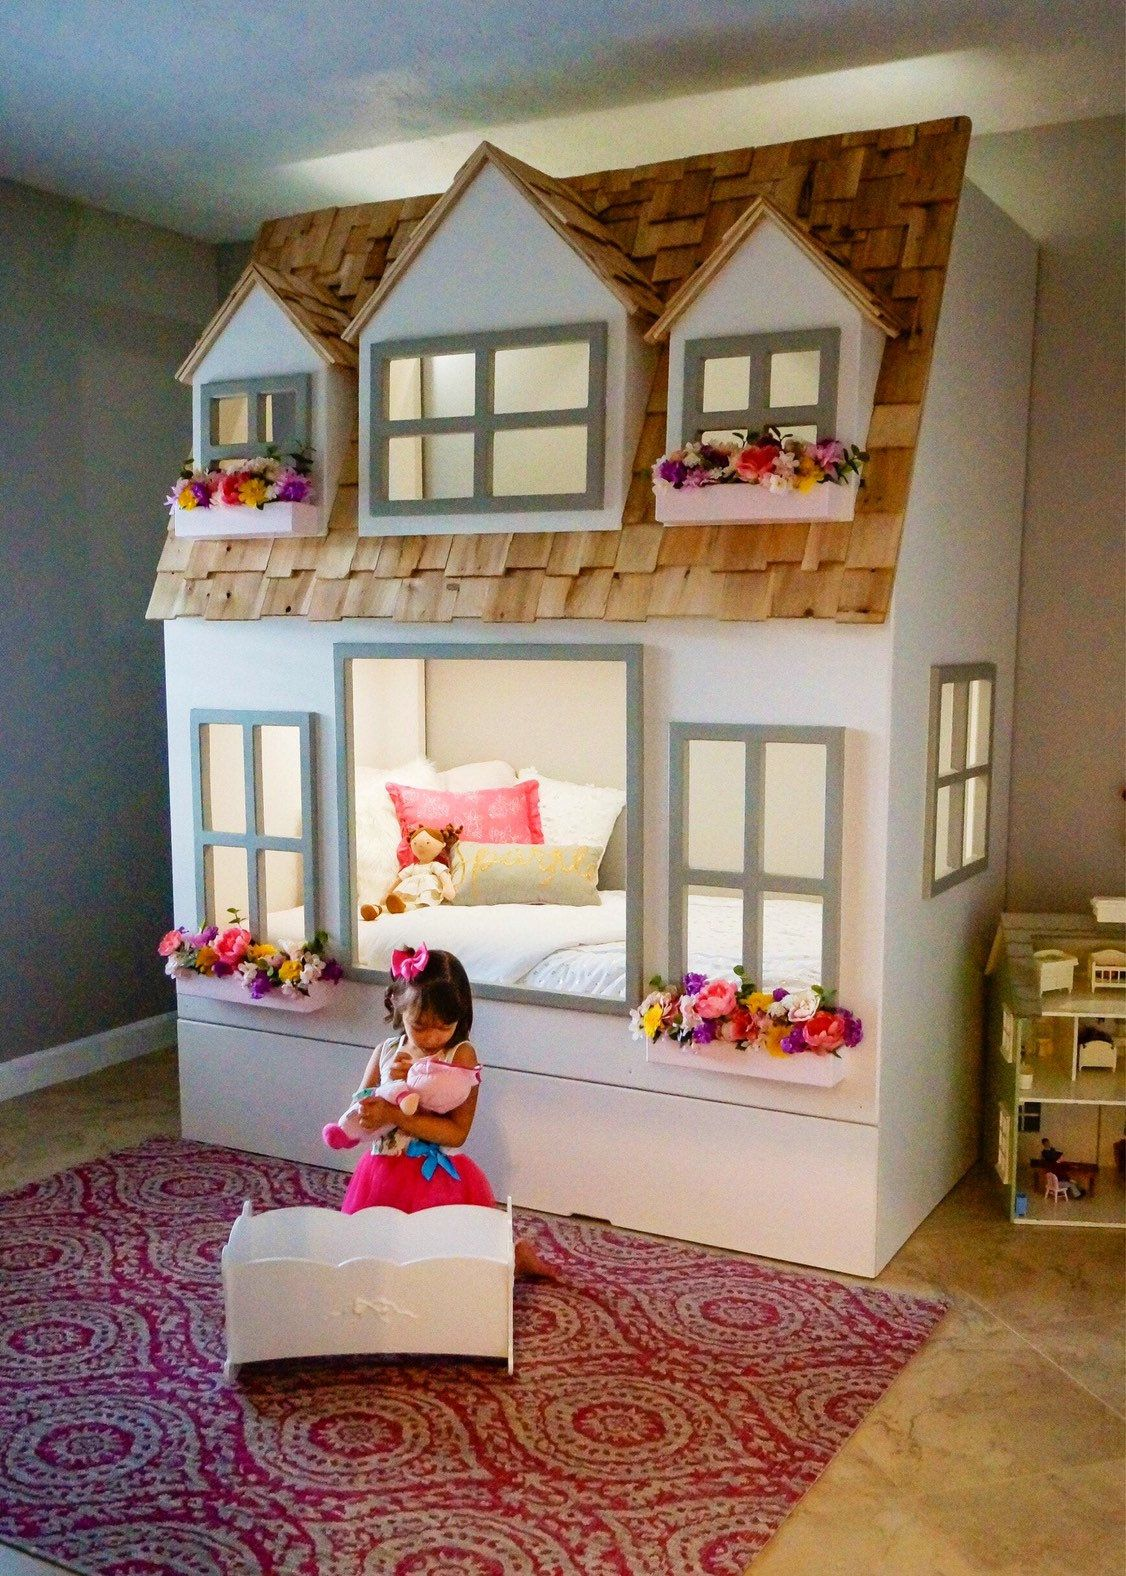 Letto A Castello Soppalco.Mia S Country Cottage Bed Loft Bunk Bed Dollhouse O Playhouse